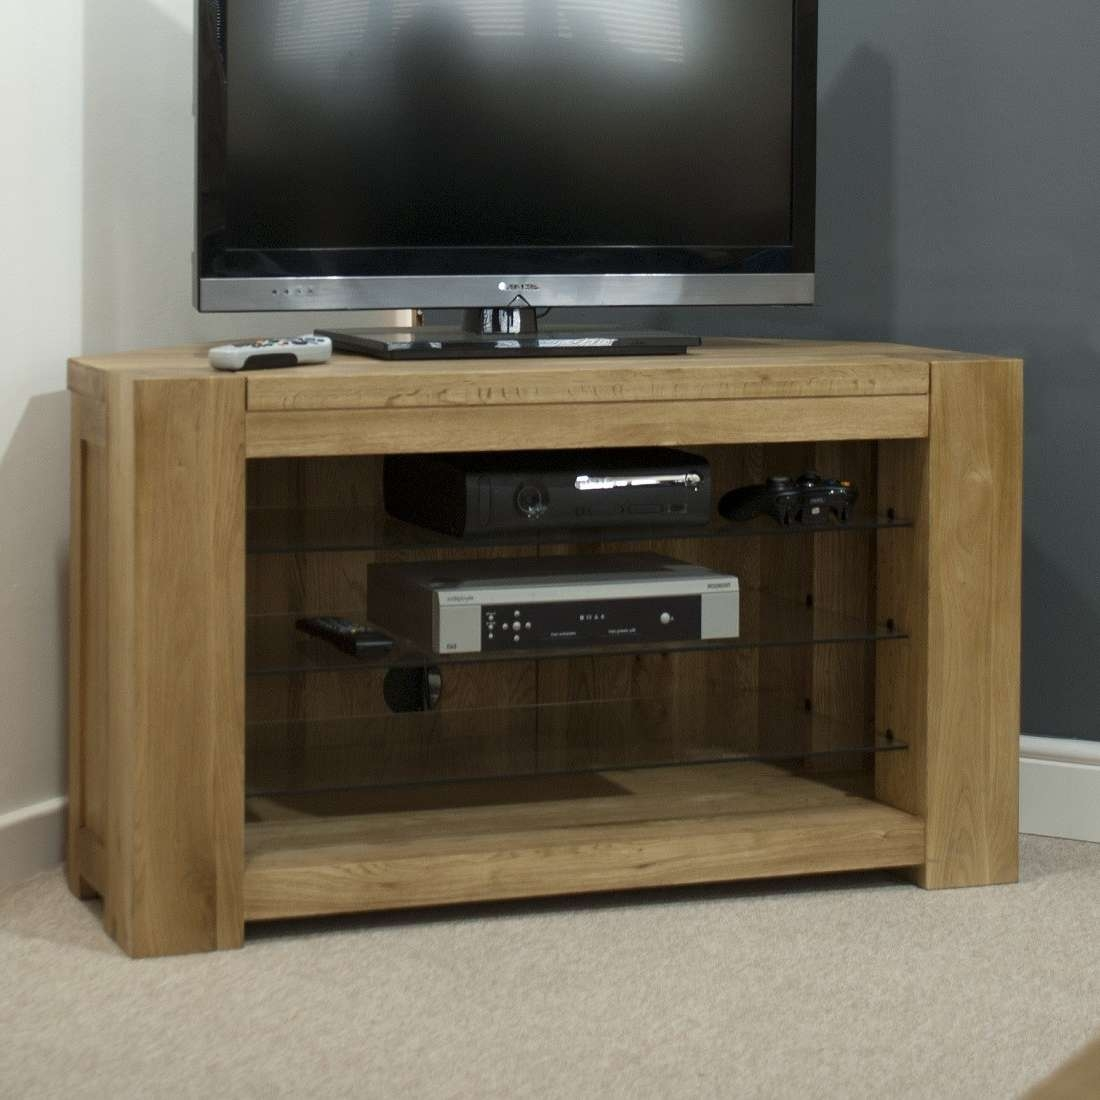 Trend Solid Oak Corner Tv Unit | Oak Furniture Uk Inside Solid Oak Corner Tv Cabinets (View 6 of 20)